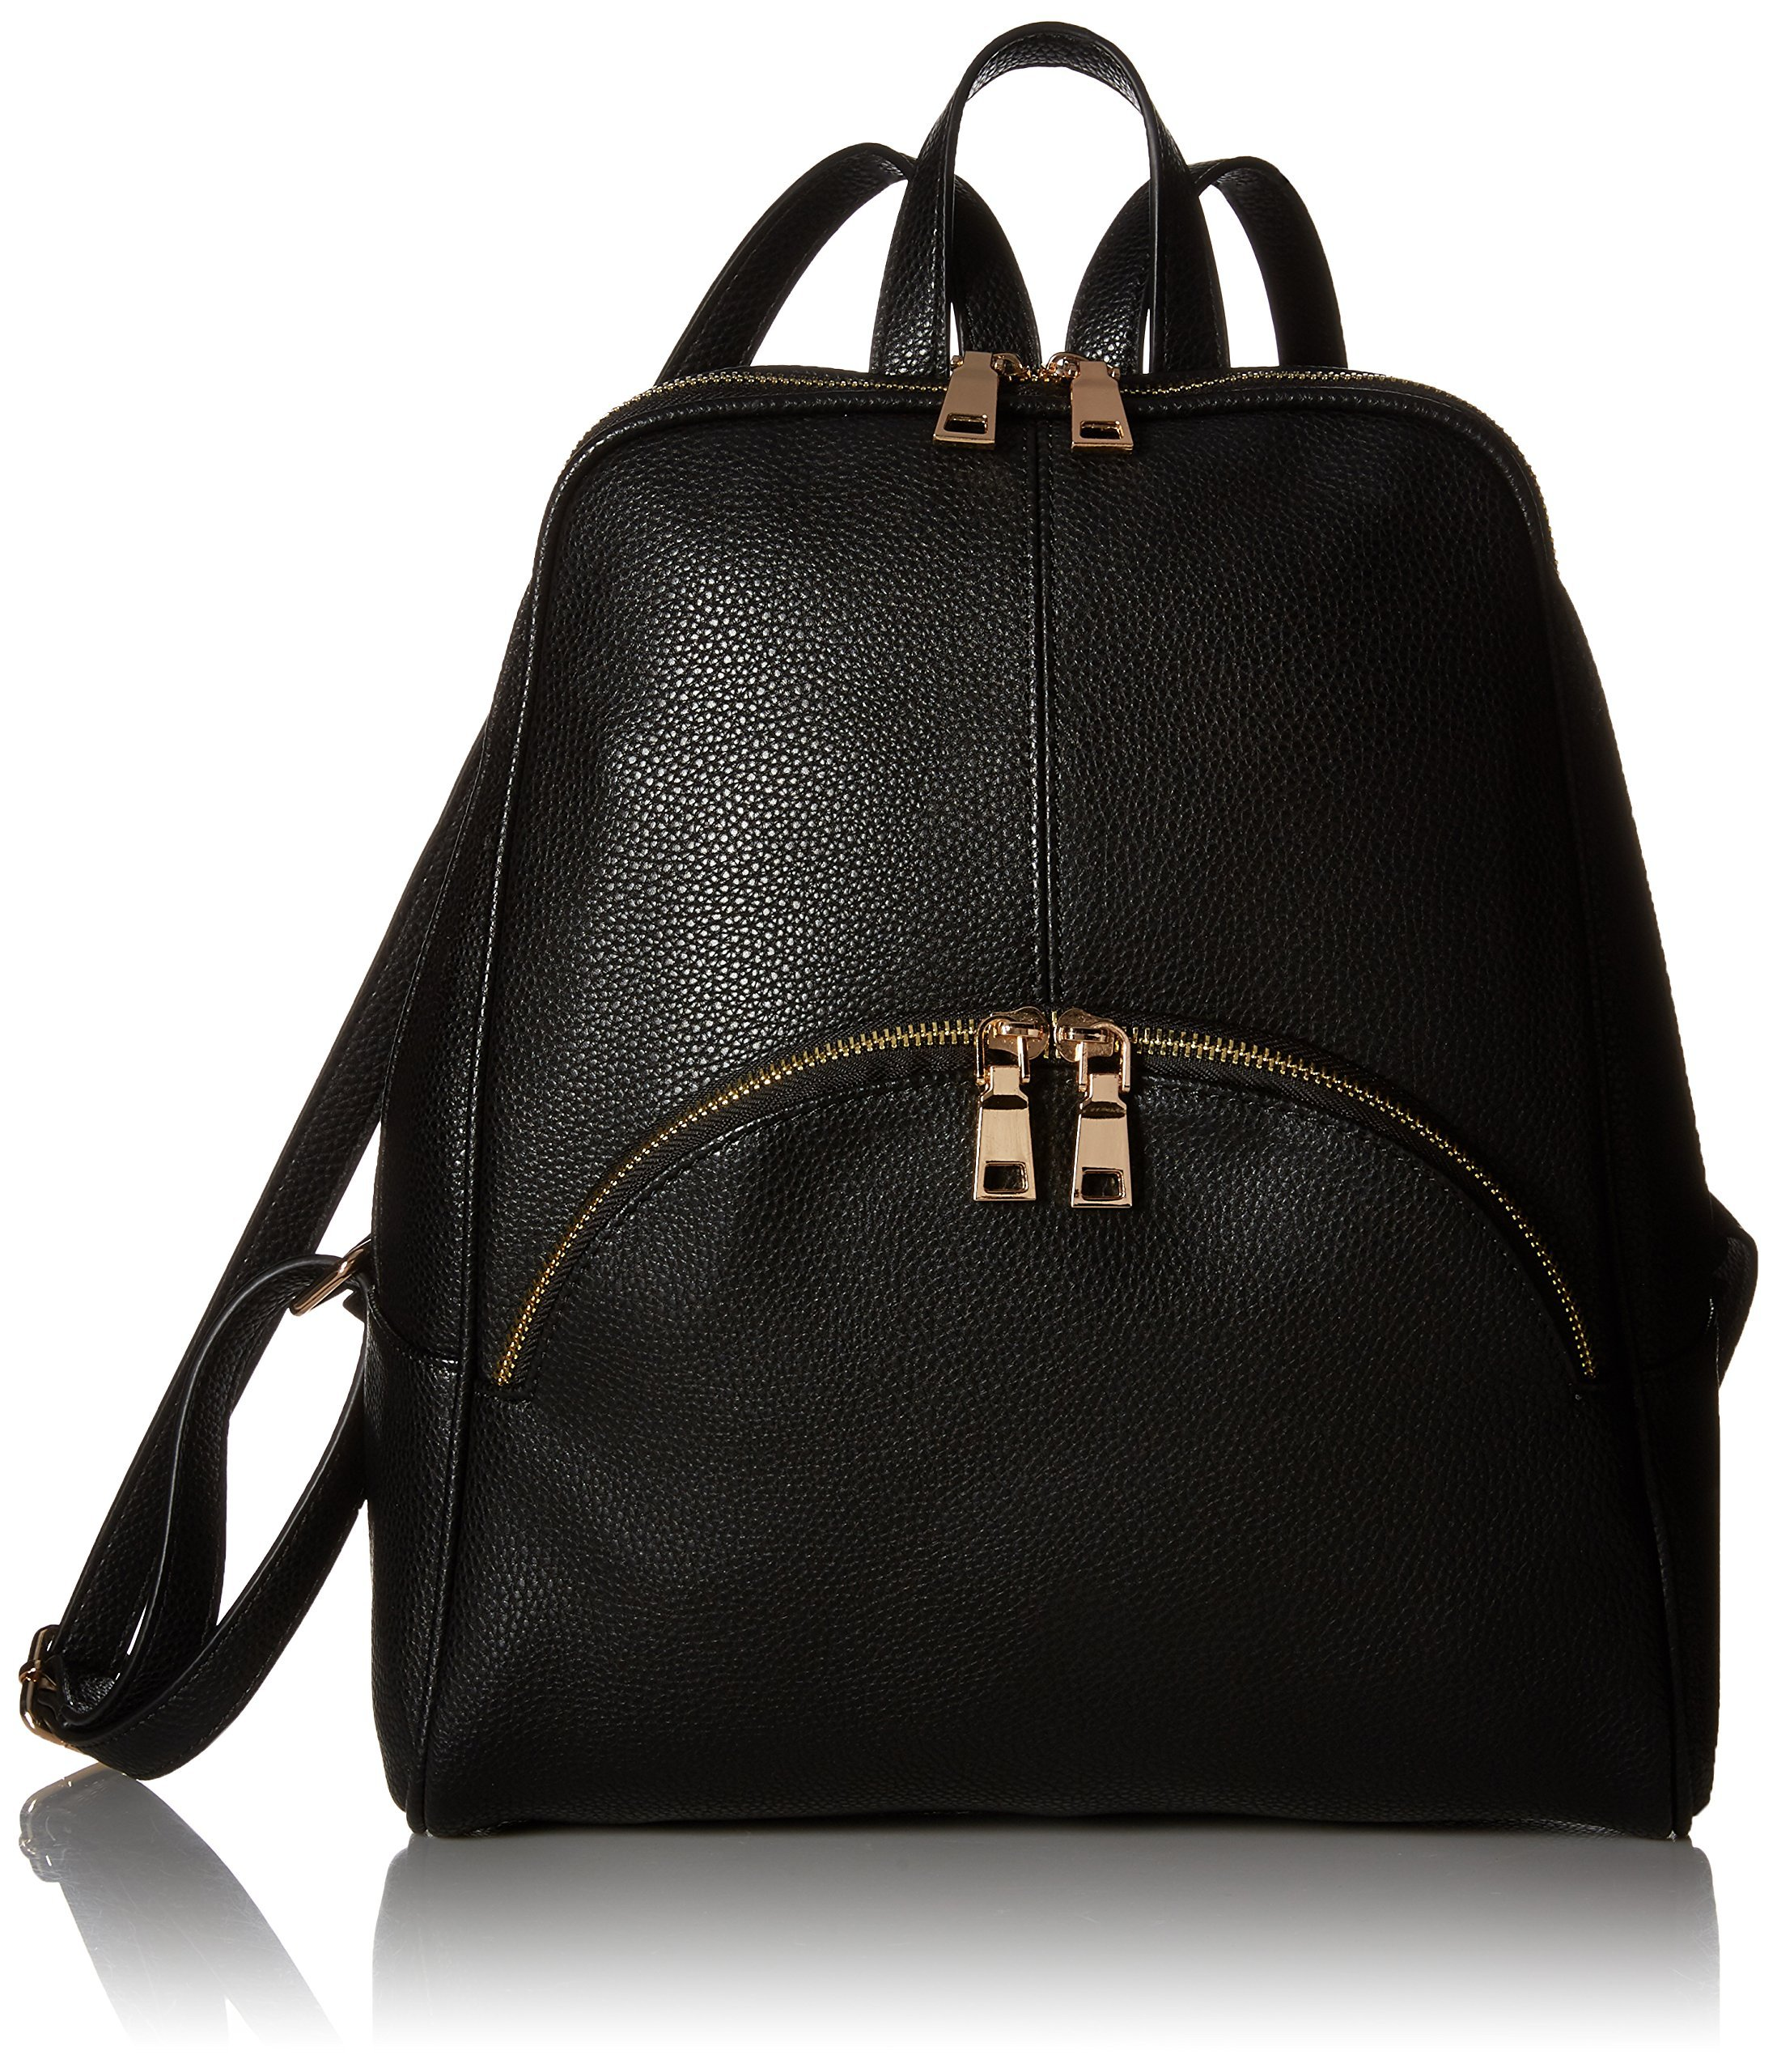 Scarleton Chic Casual Backpack H160801 - Black by Scarleton